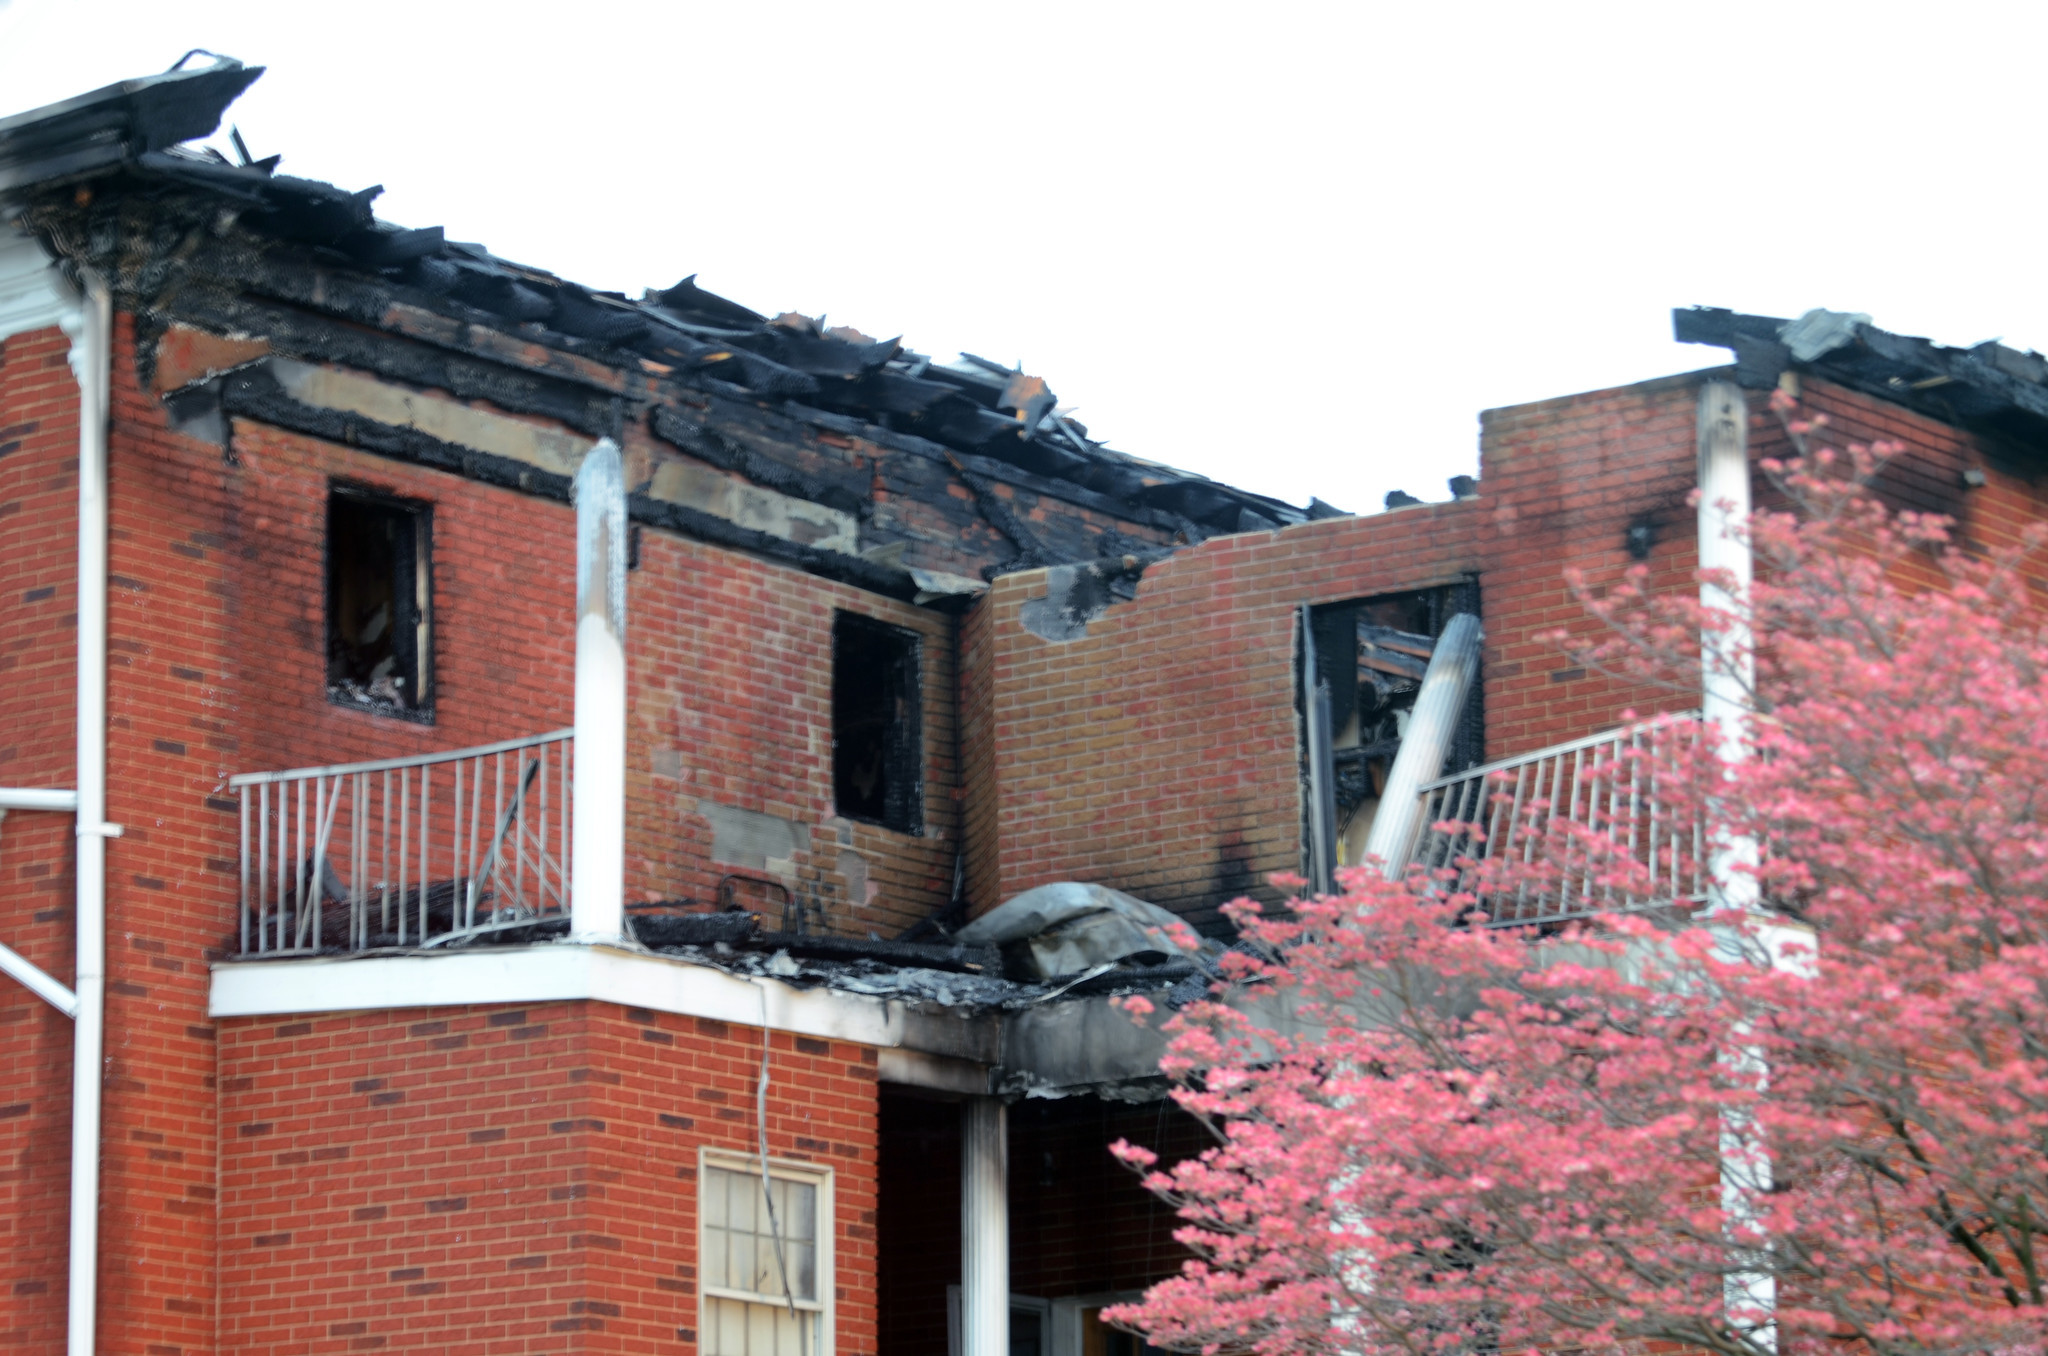 Fire Damages Boyko Funeral Home Building In Macungie The